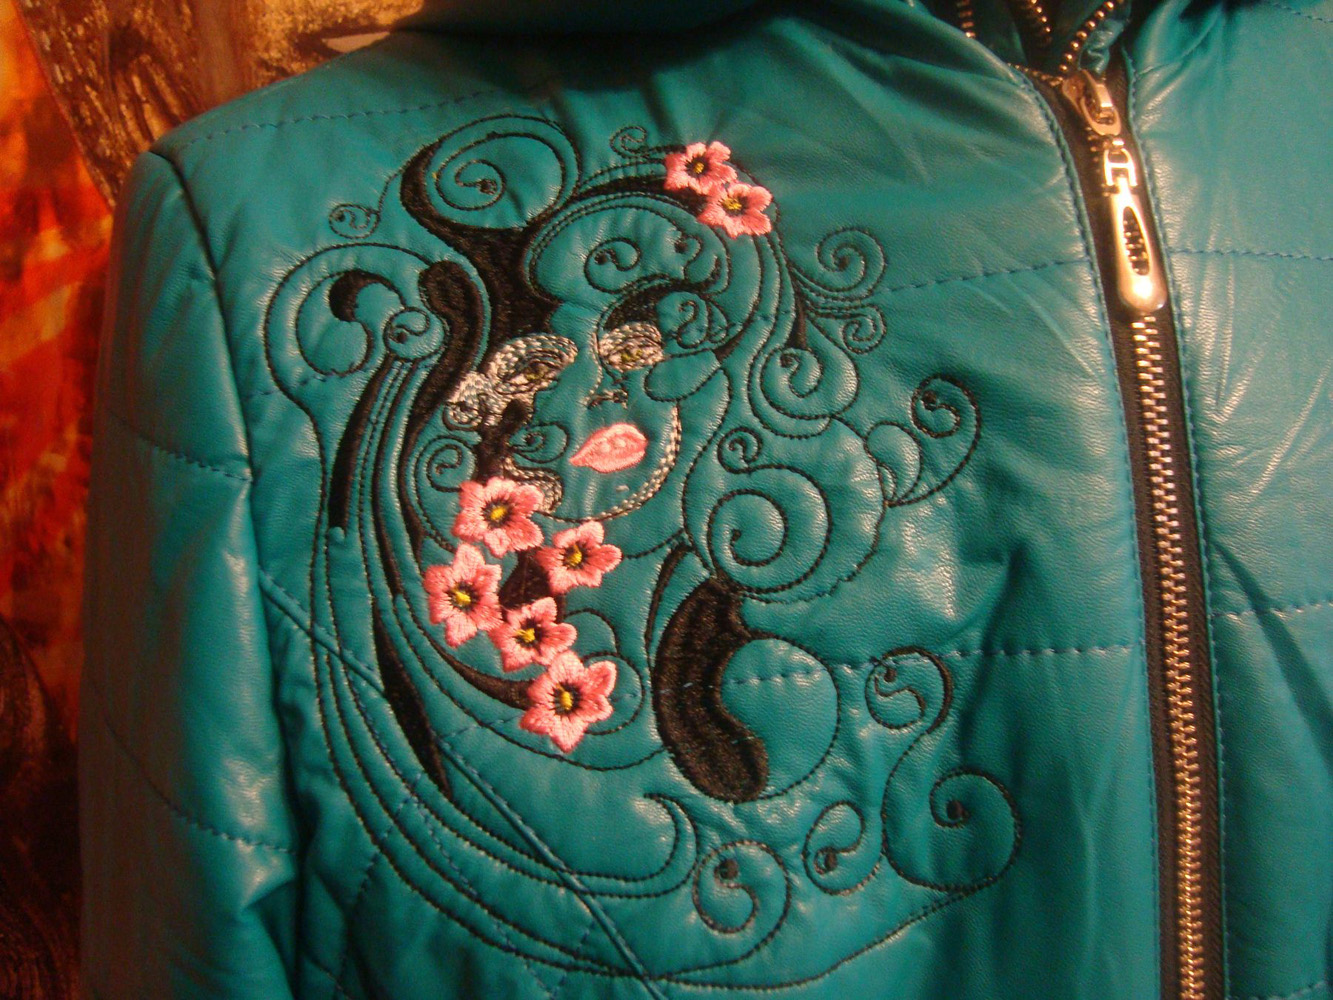 Embroidered jacket with Spring design